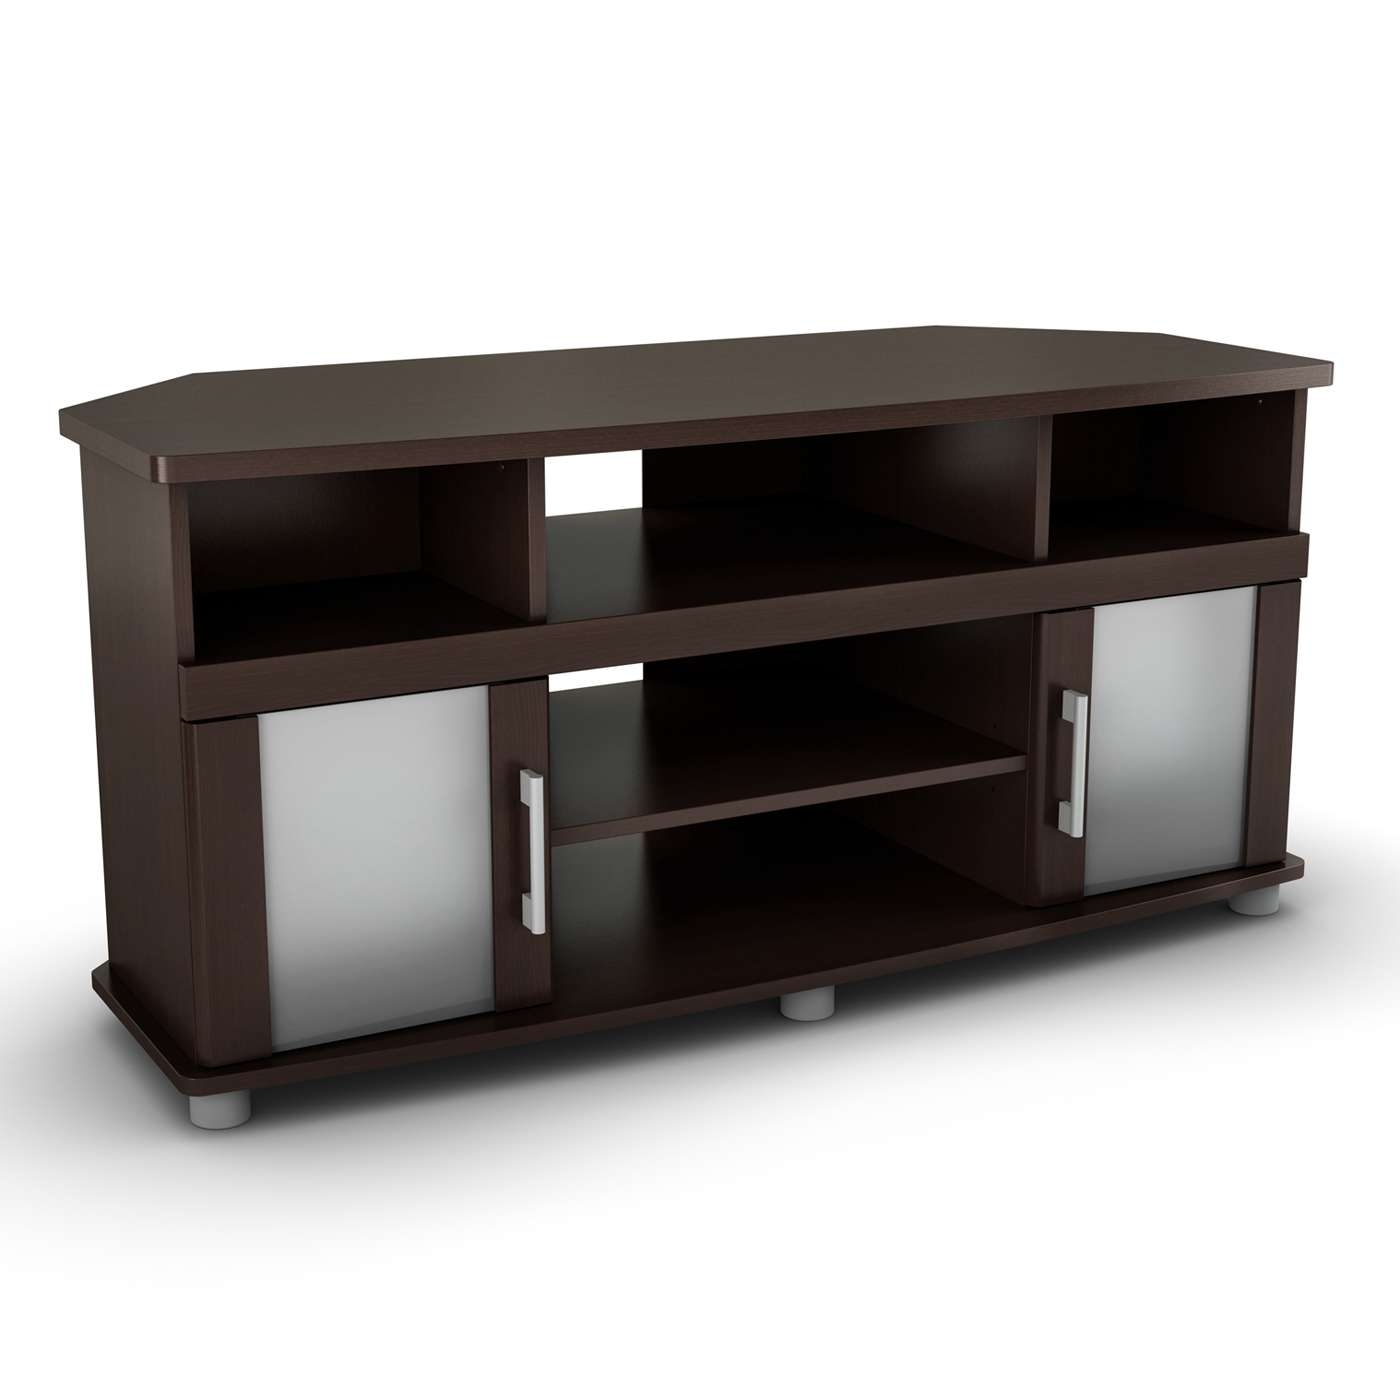 Tv Stand : Formidable Corner Tv Stand Image Inspirations Electric With Low Corner Tv Cabinets (View 11 of 20)